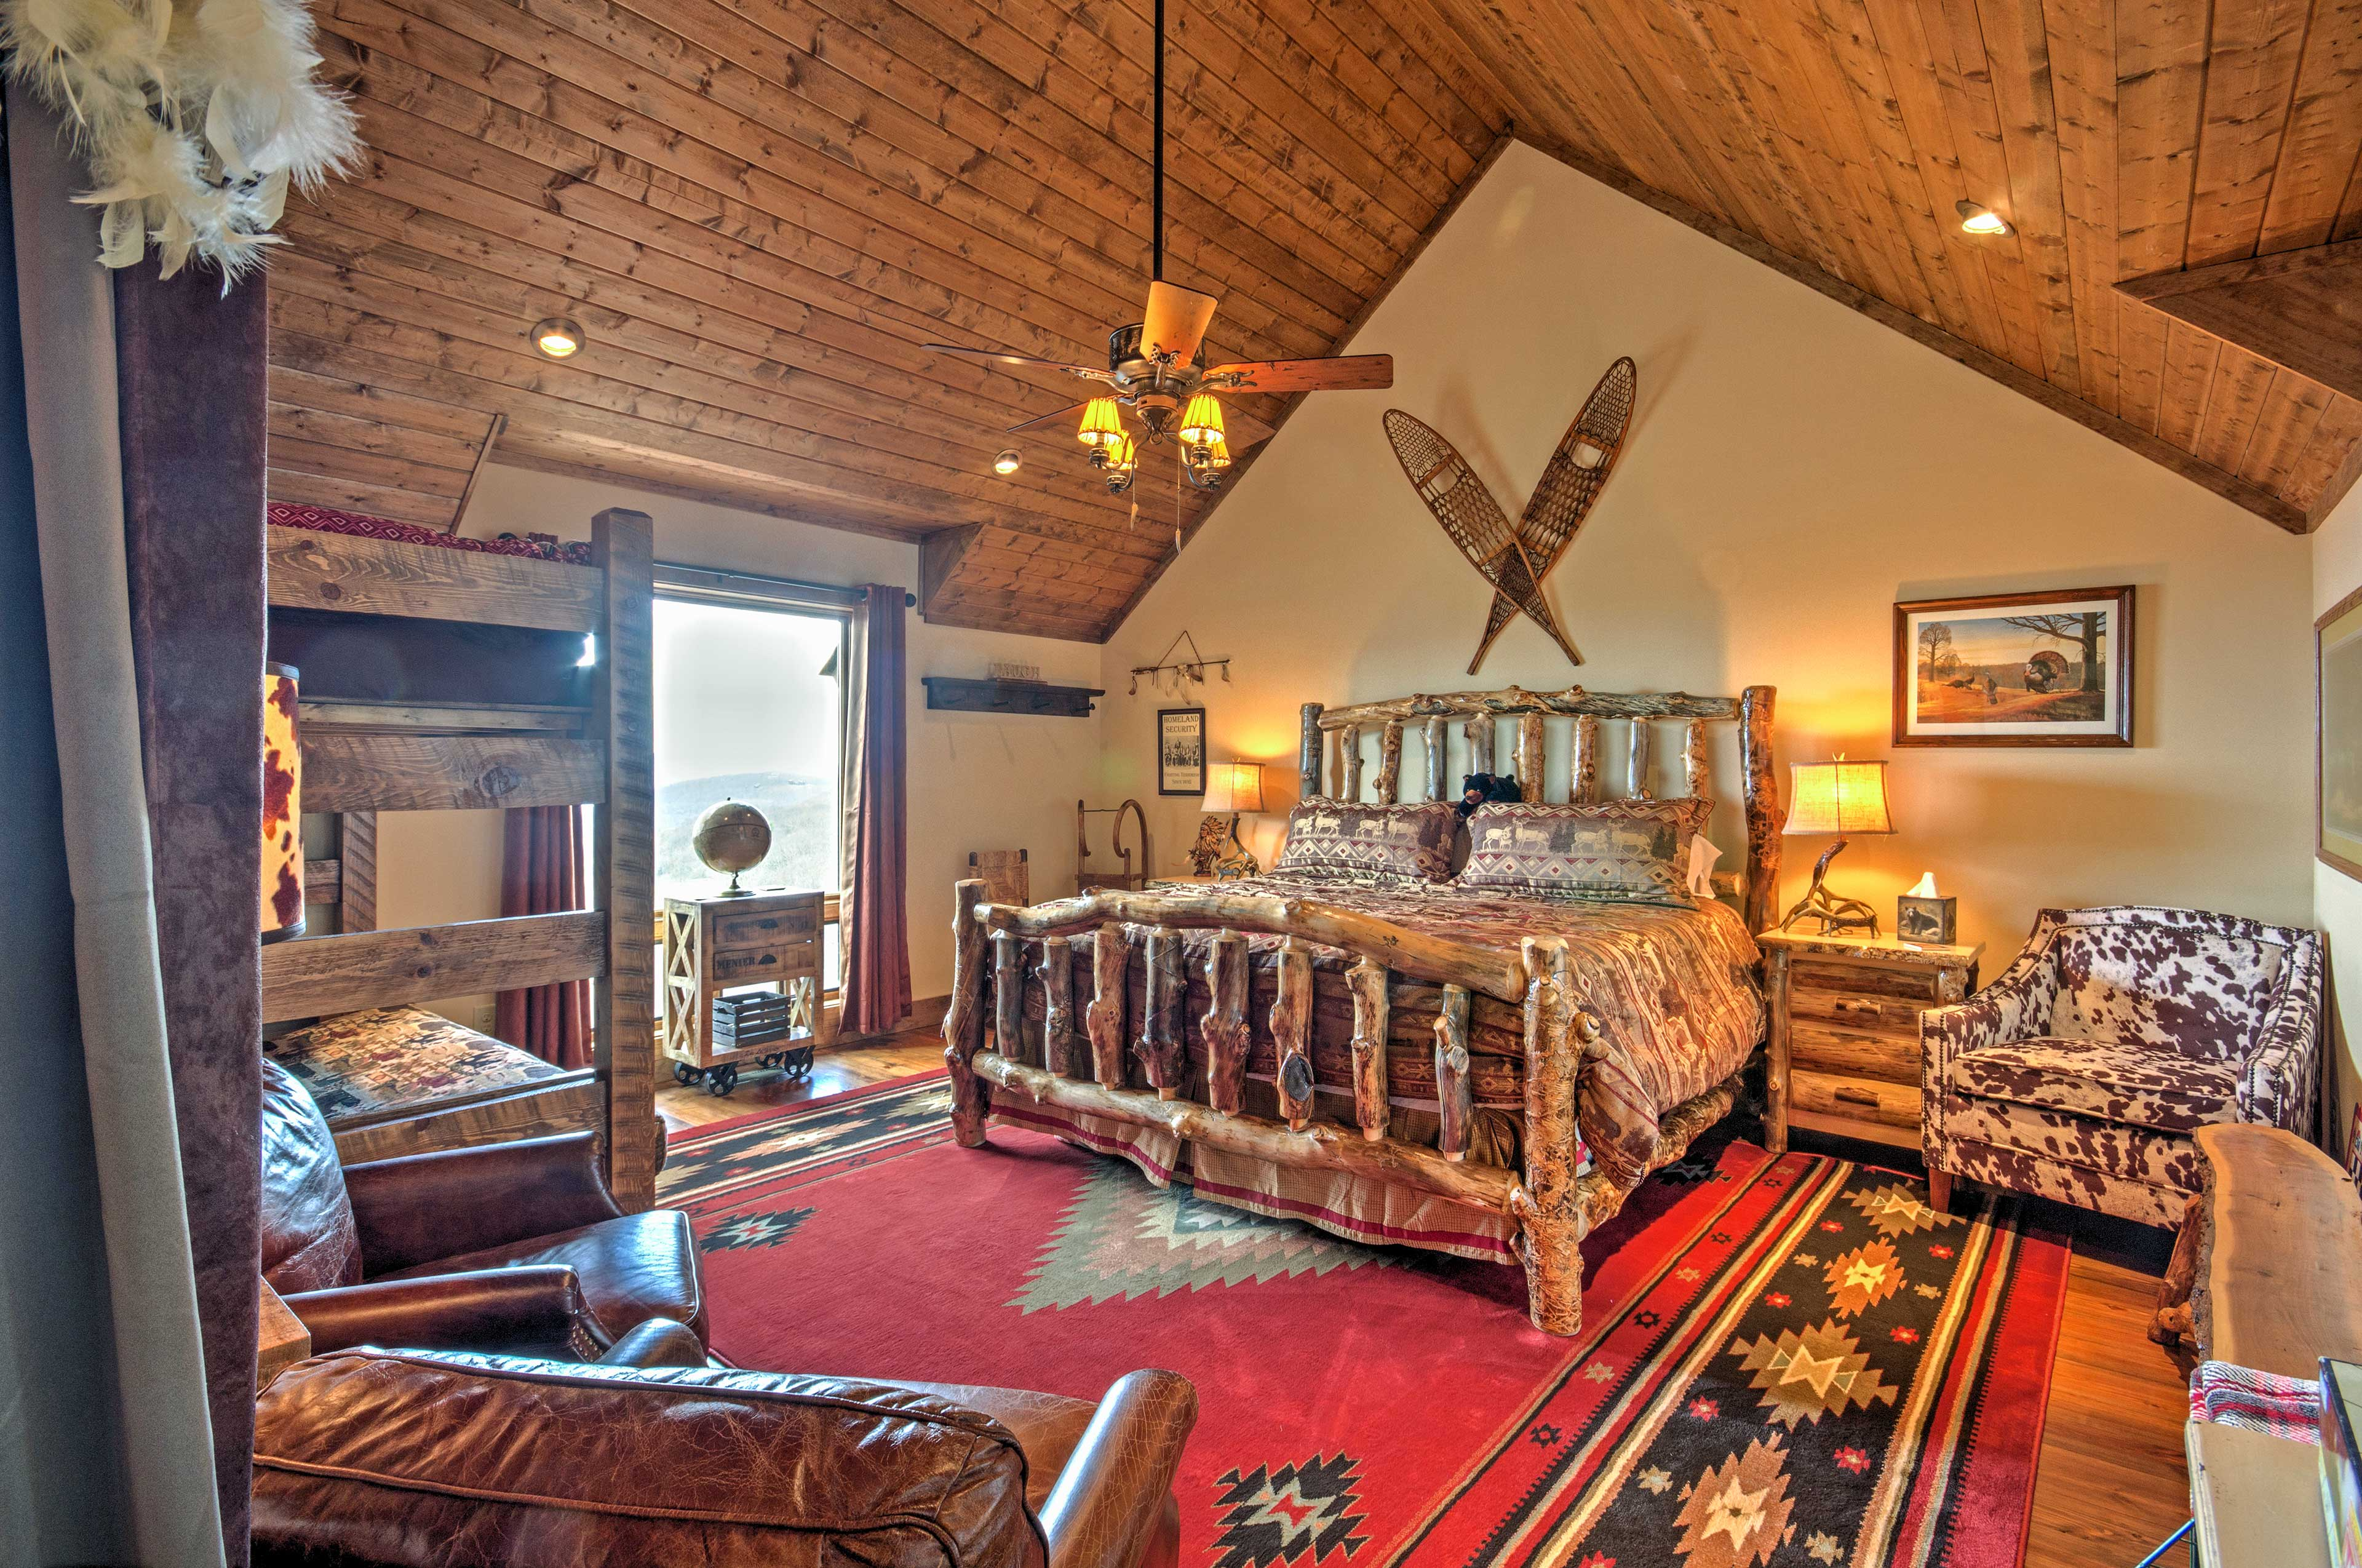 All the bedrooms in the cabin offer luxurious sleeping accommodations.